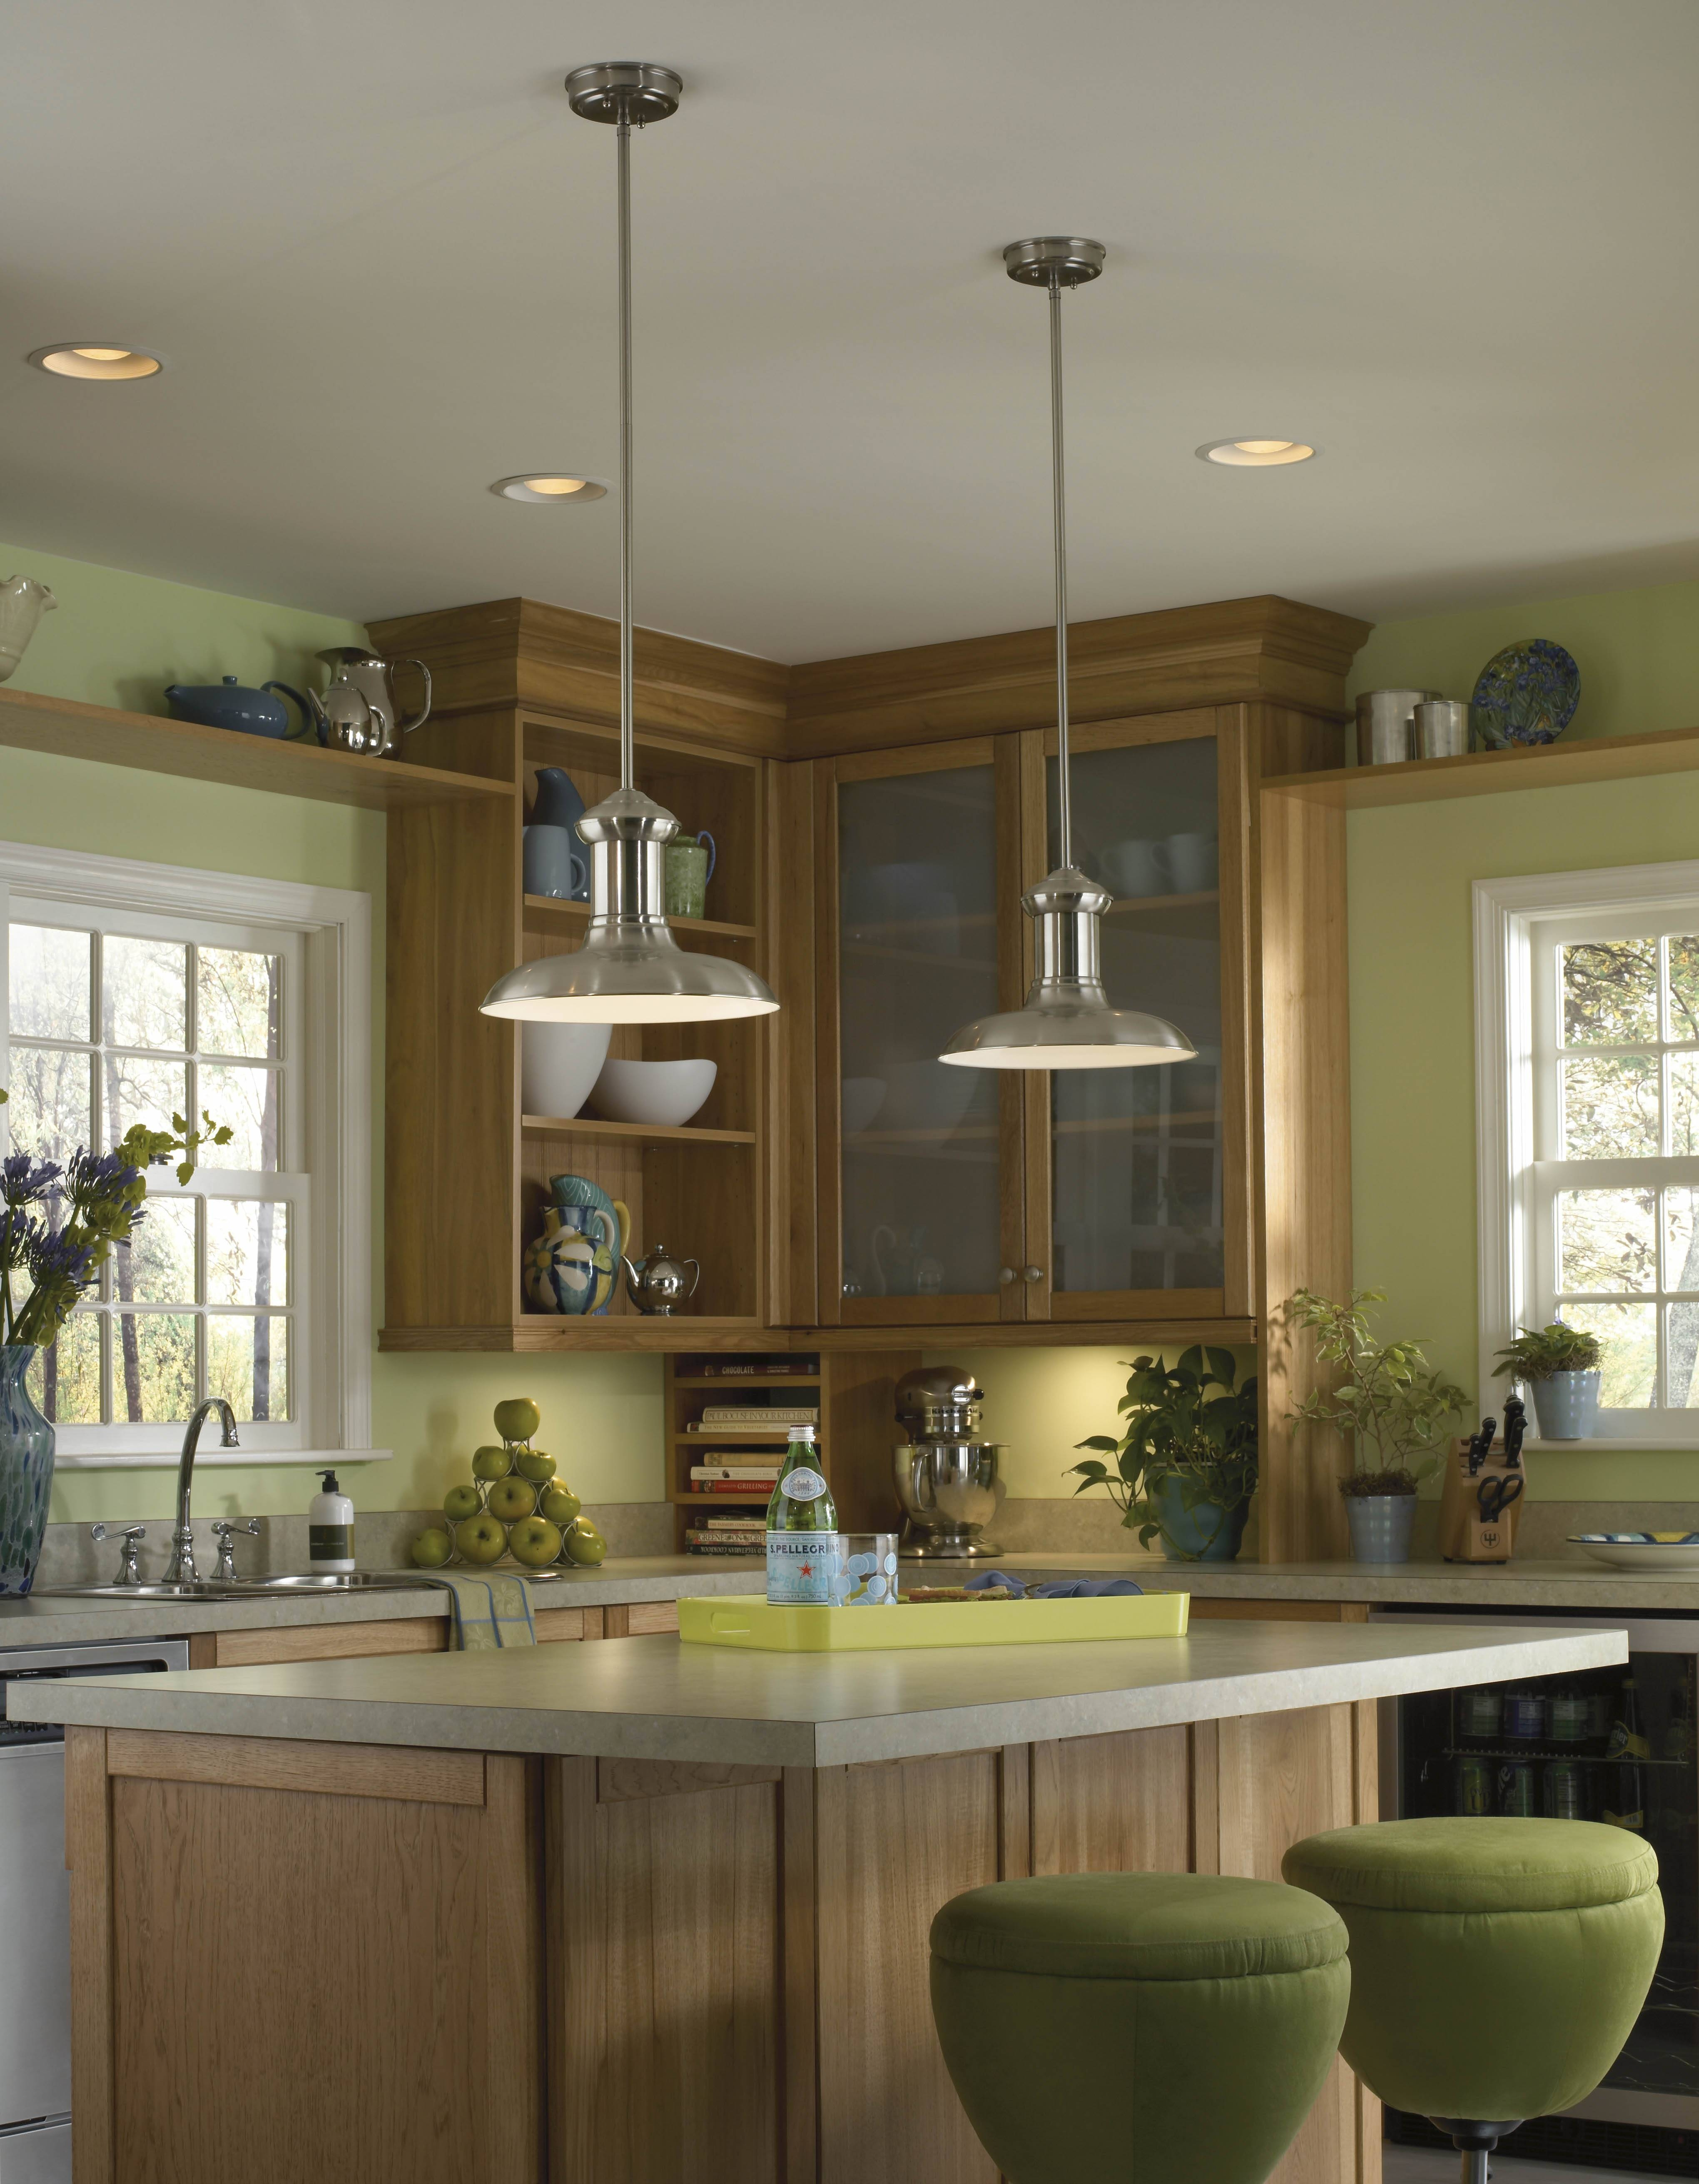 Good Mini Pendant Light Fixtures For Kitchen 49 On Stainless Steel Intended For Stainless Steel Kitchen Pendant Lights (View 2 of 15)